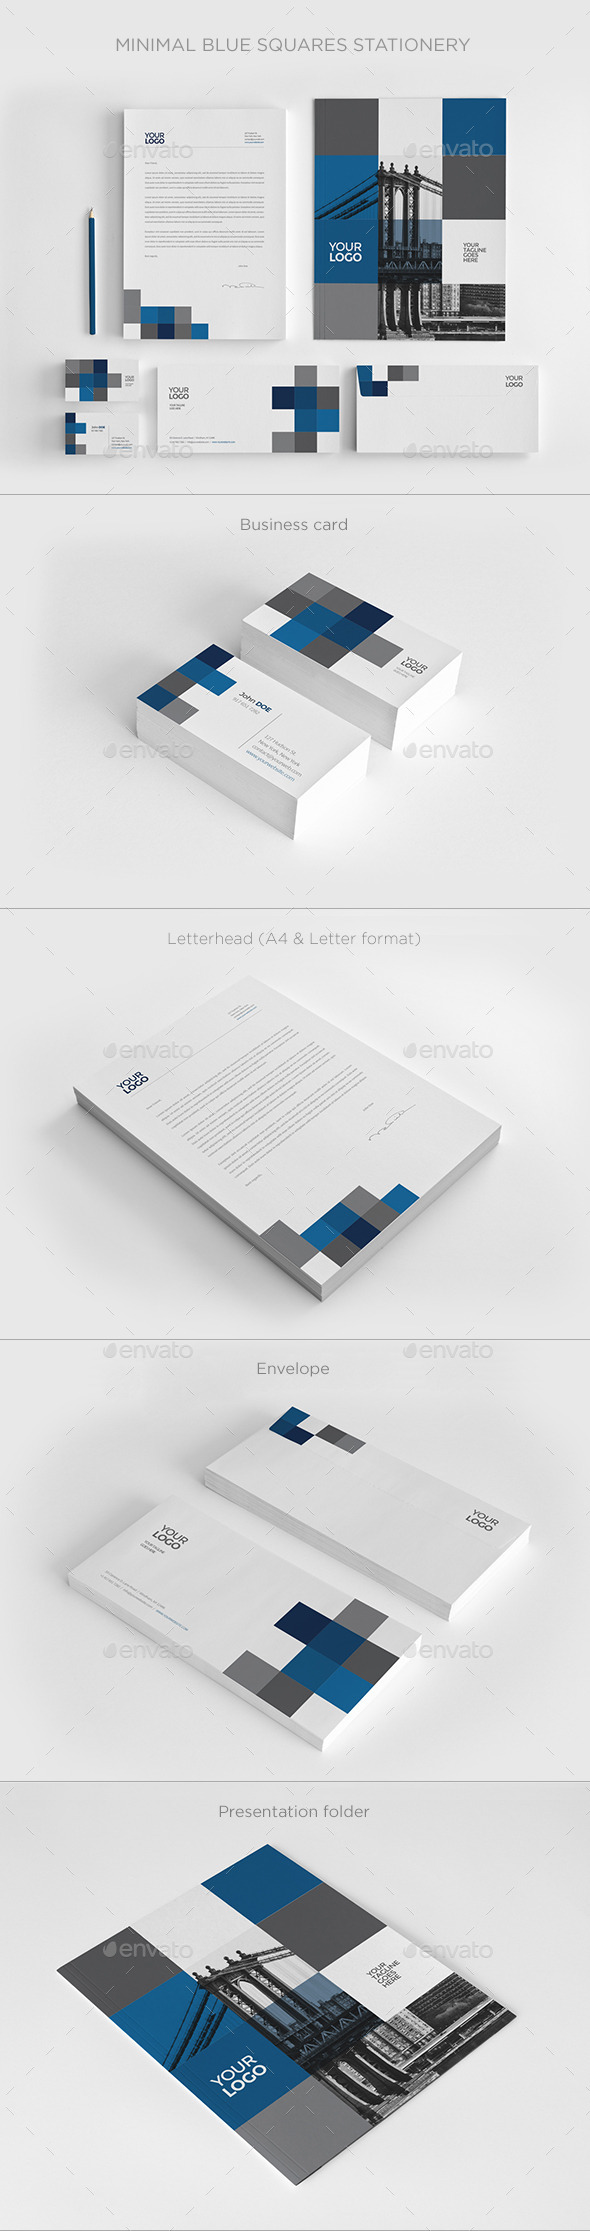 Minimal Blue Squares Stationery - Stationery Print Templates